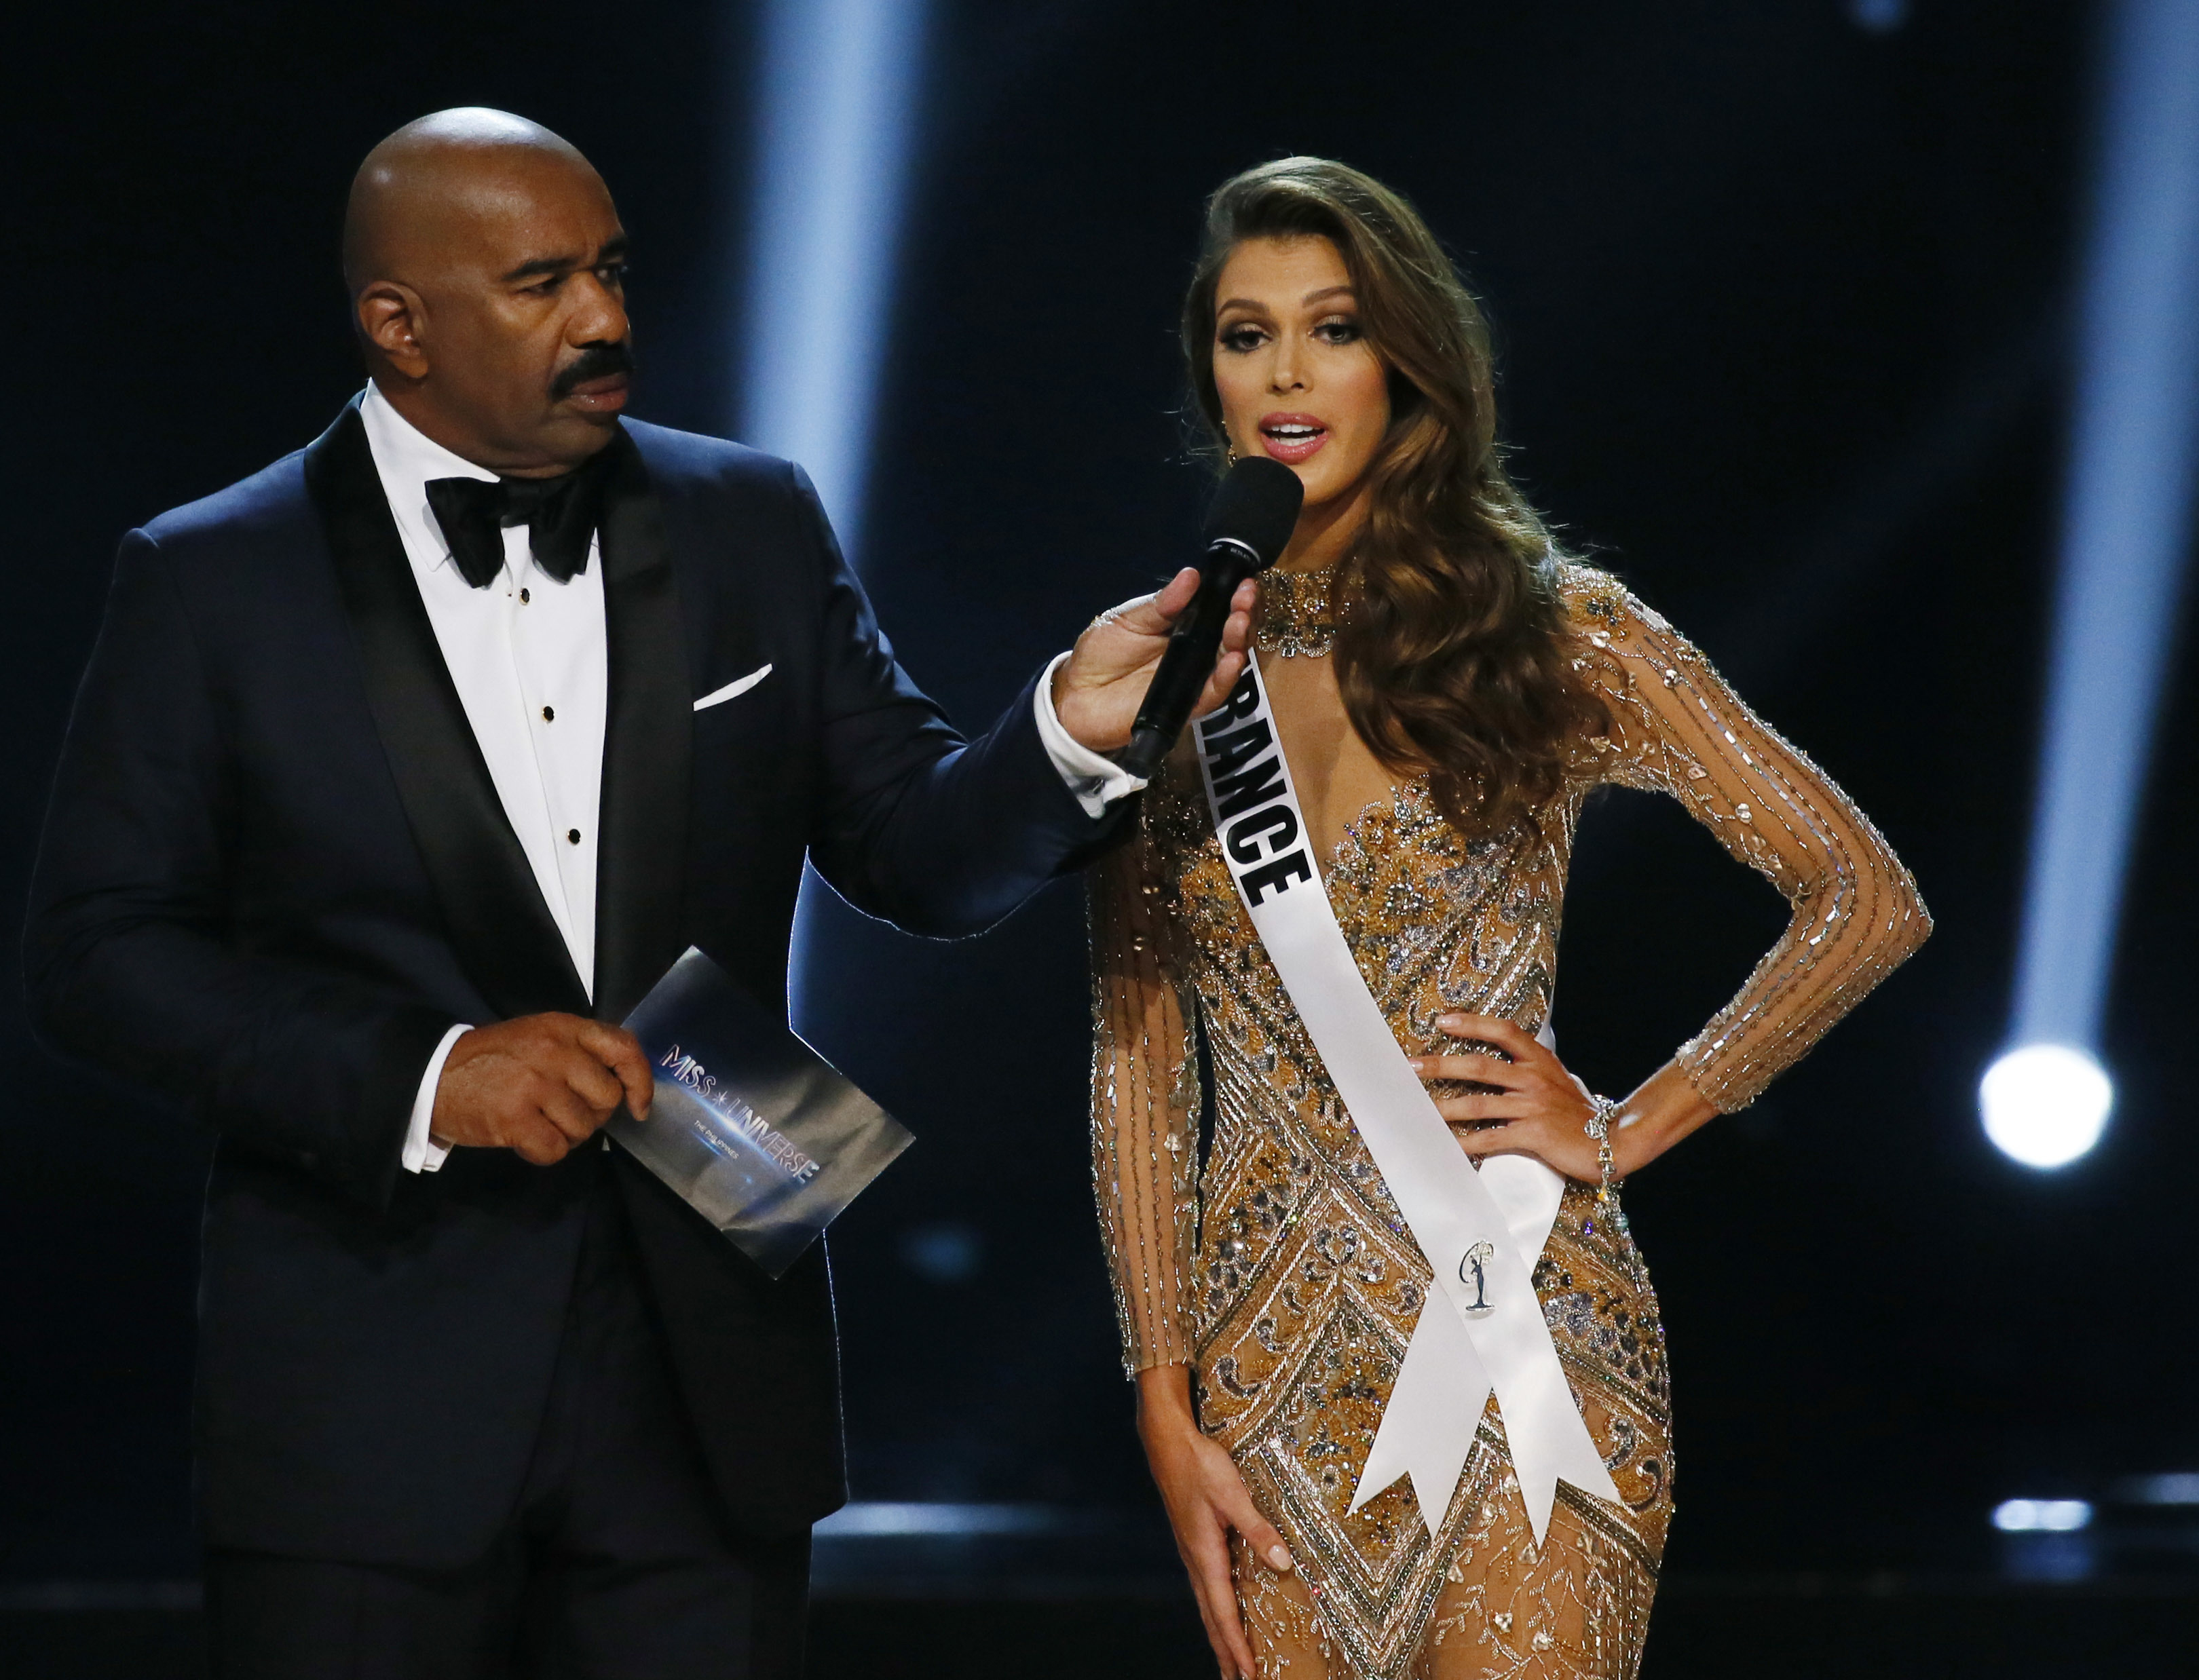 Miss France Iris Mittenaere expounds on her answer during the question-and-answer portion of the Miss Universe 2016 competition  at the Mall of Asia in suburban Pasay city, south of Manila, Philippines on Jan. 30, 2017. (AP Photo/Bullit Marquez)